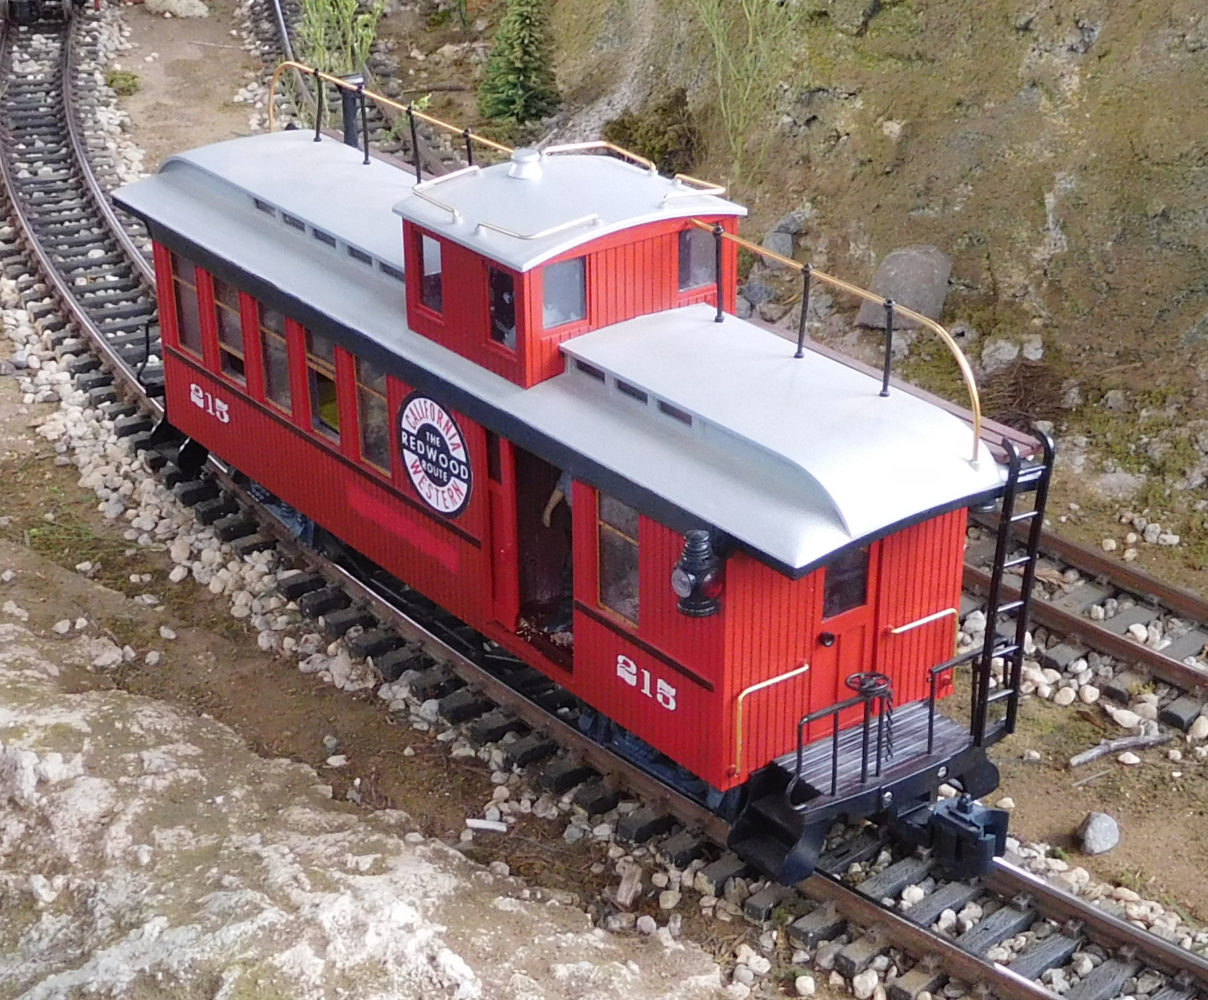 Drovers' caboose